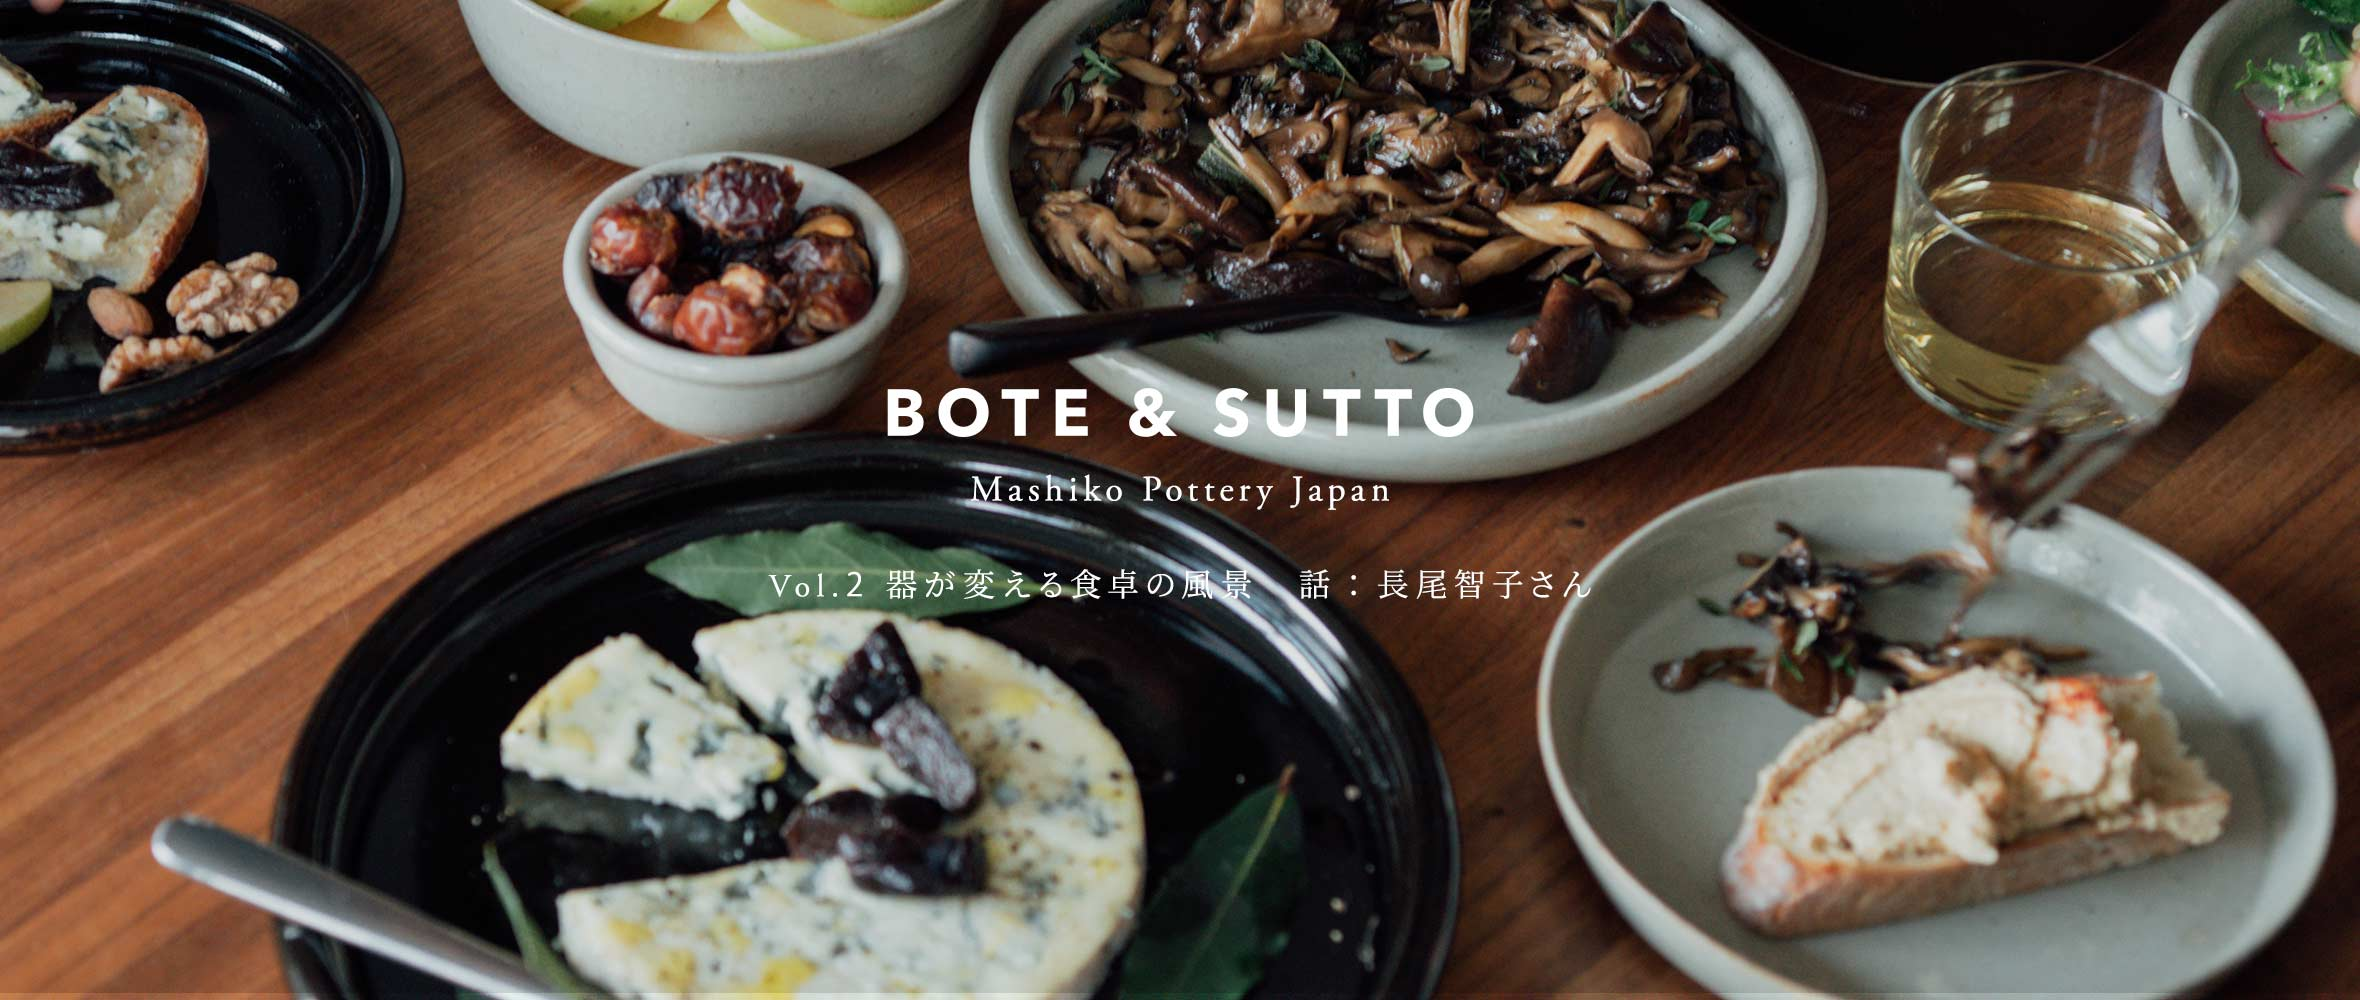 BOTE & SUTTO Vol.2 器が変える食卓の風景 話:長尾智子さん